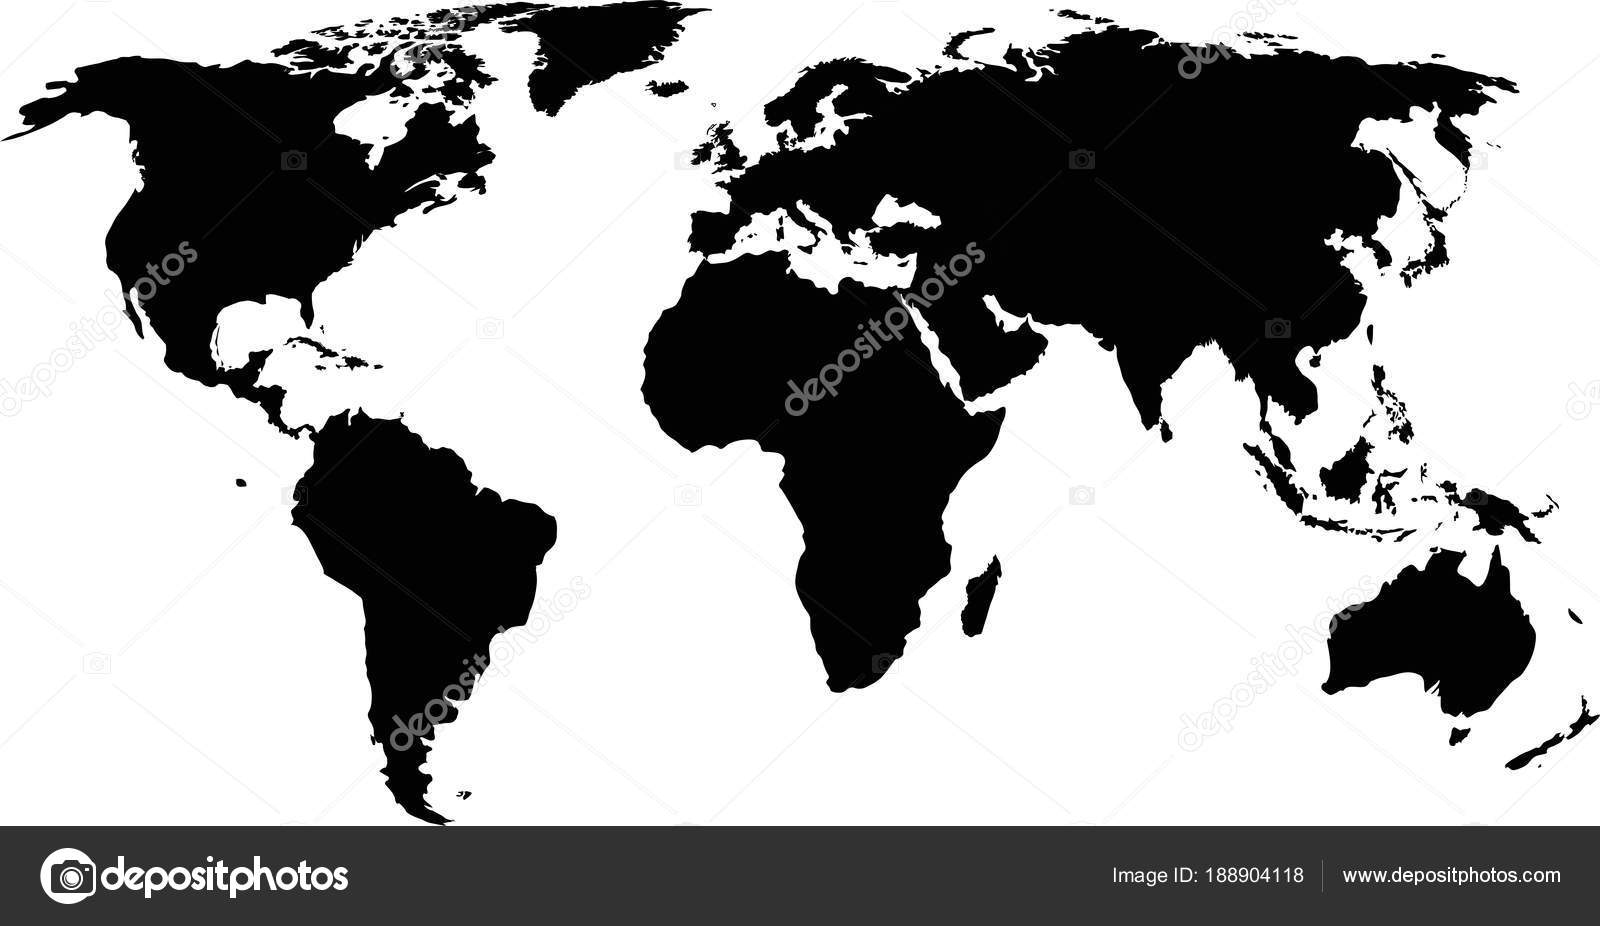 Silhouette of a world map stock vector 1000pixels 188904118 silhouette of a world map stock vector gumiabroncs Choice Image